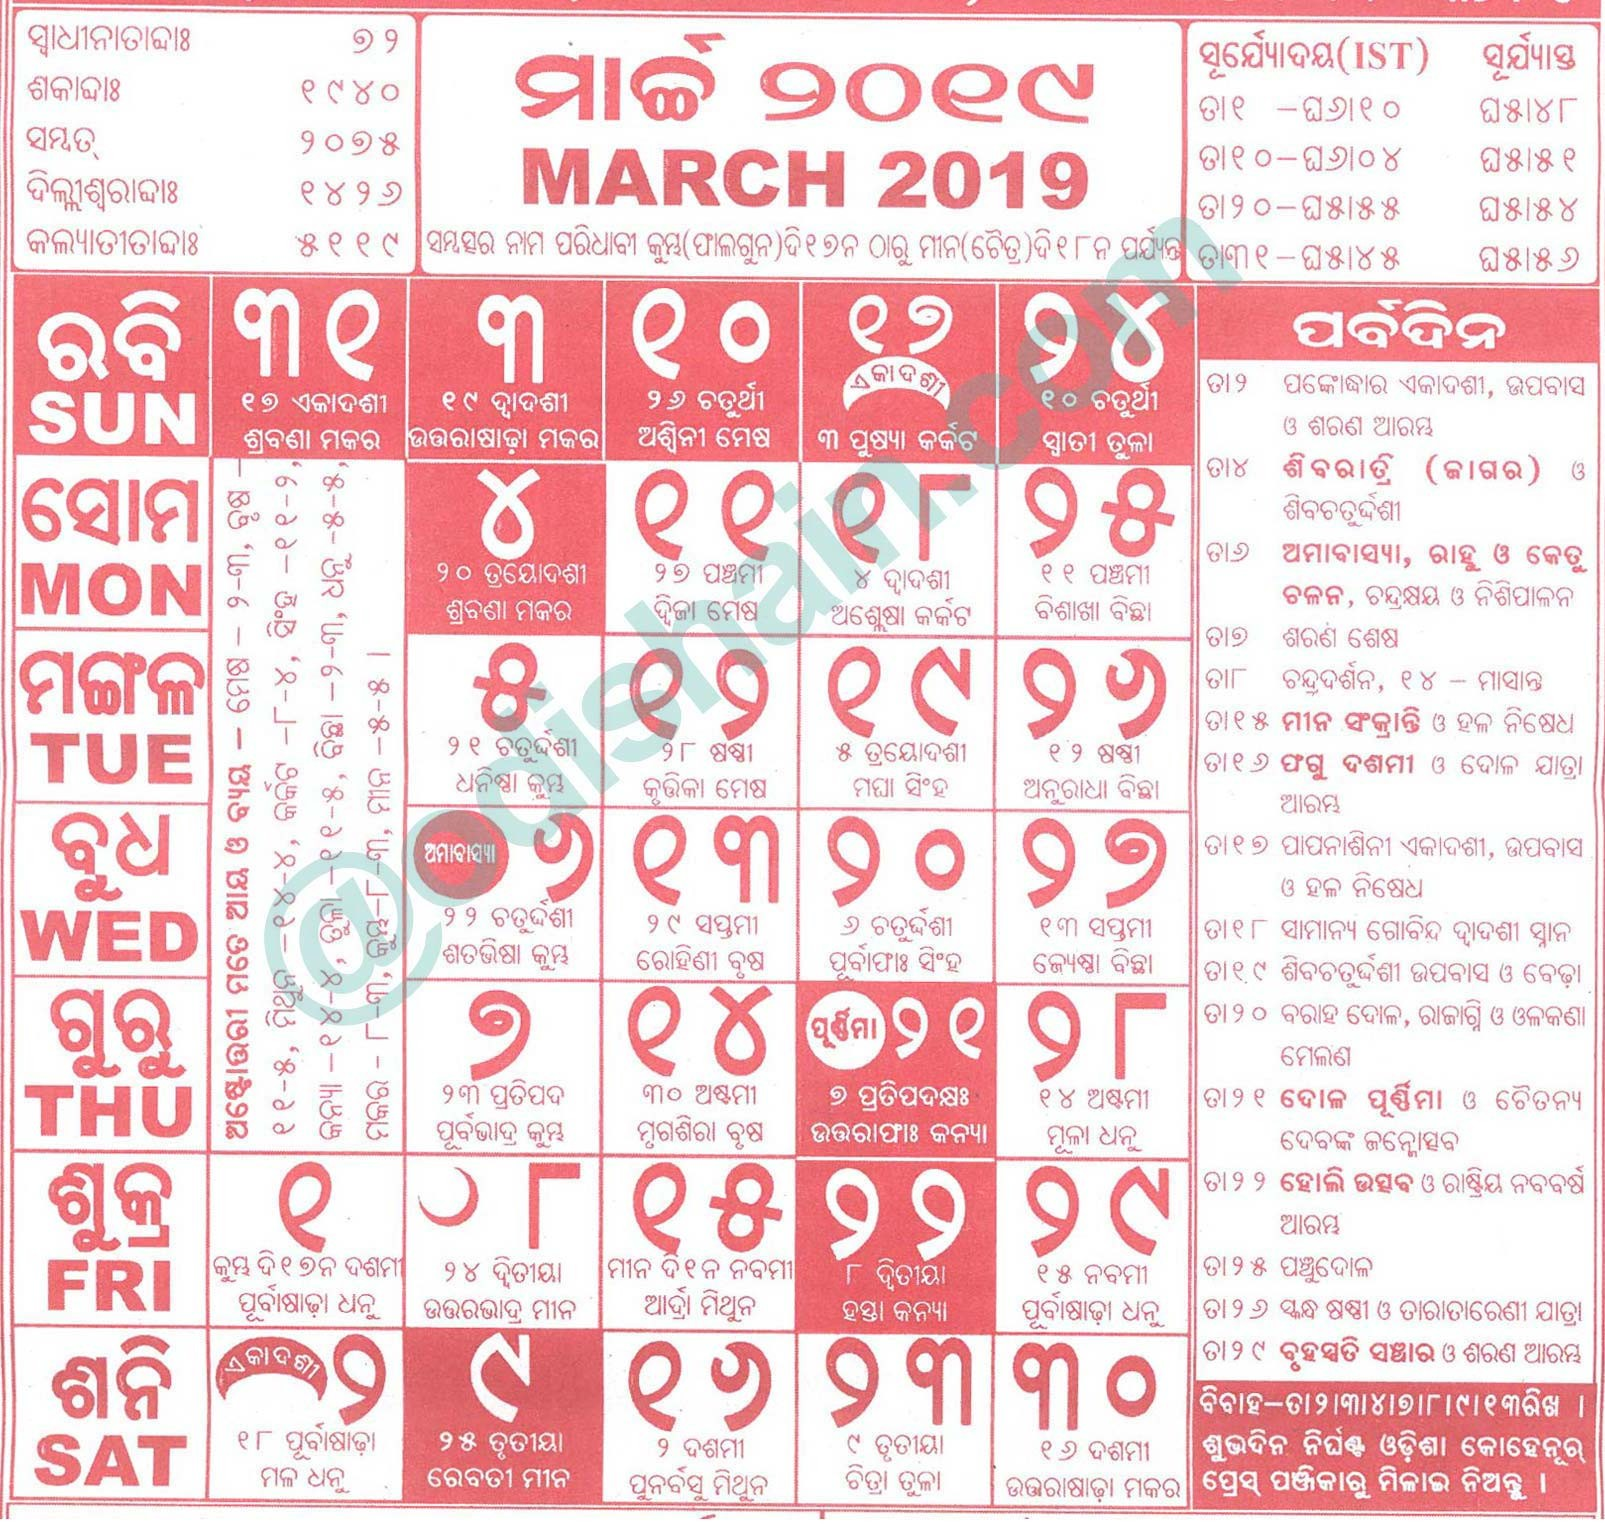 March Calendar 2019 Más Actual Odia Calendar 2019 with March Odishain Of March Calendar 2019 Más Populares March 2019 Calendar Pdf Word Excel